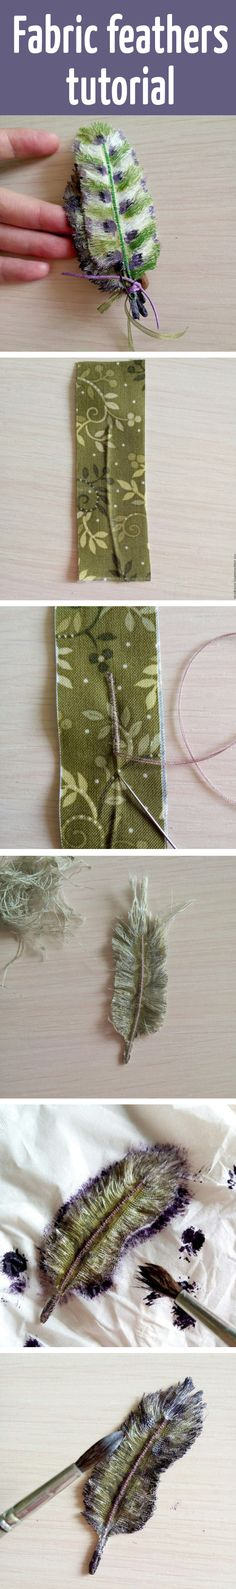 Fabric feathers tutorial Would look fab with some fabric flowers!